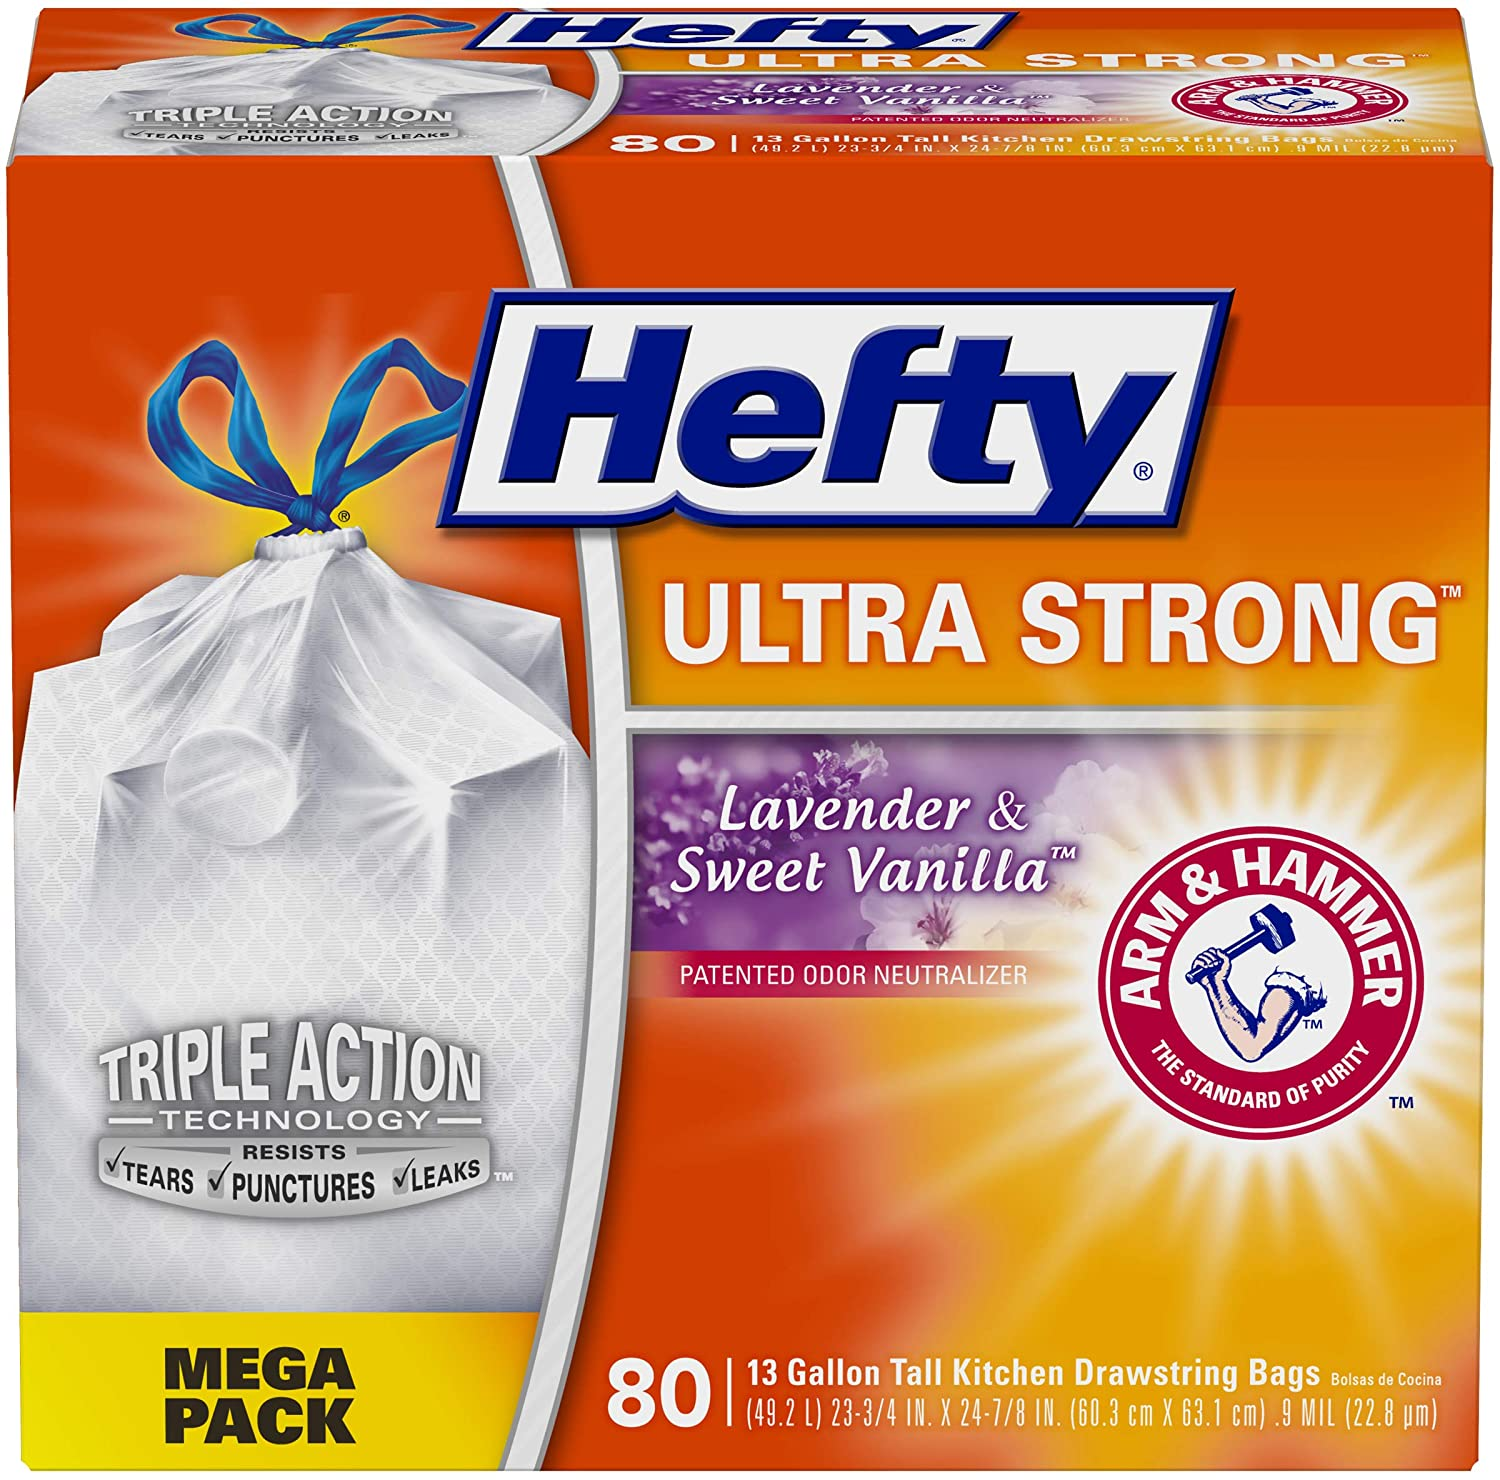 Hefty Ultra Strong Tall Kitchen Trash Bags - Lavender Sweet Vanilla, 13 Gallon, 80 Count